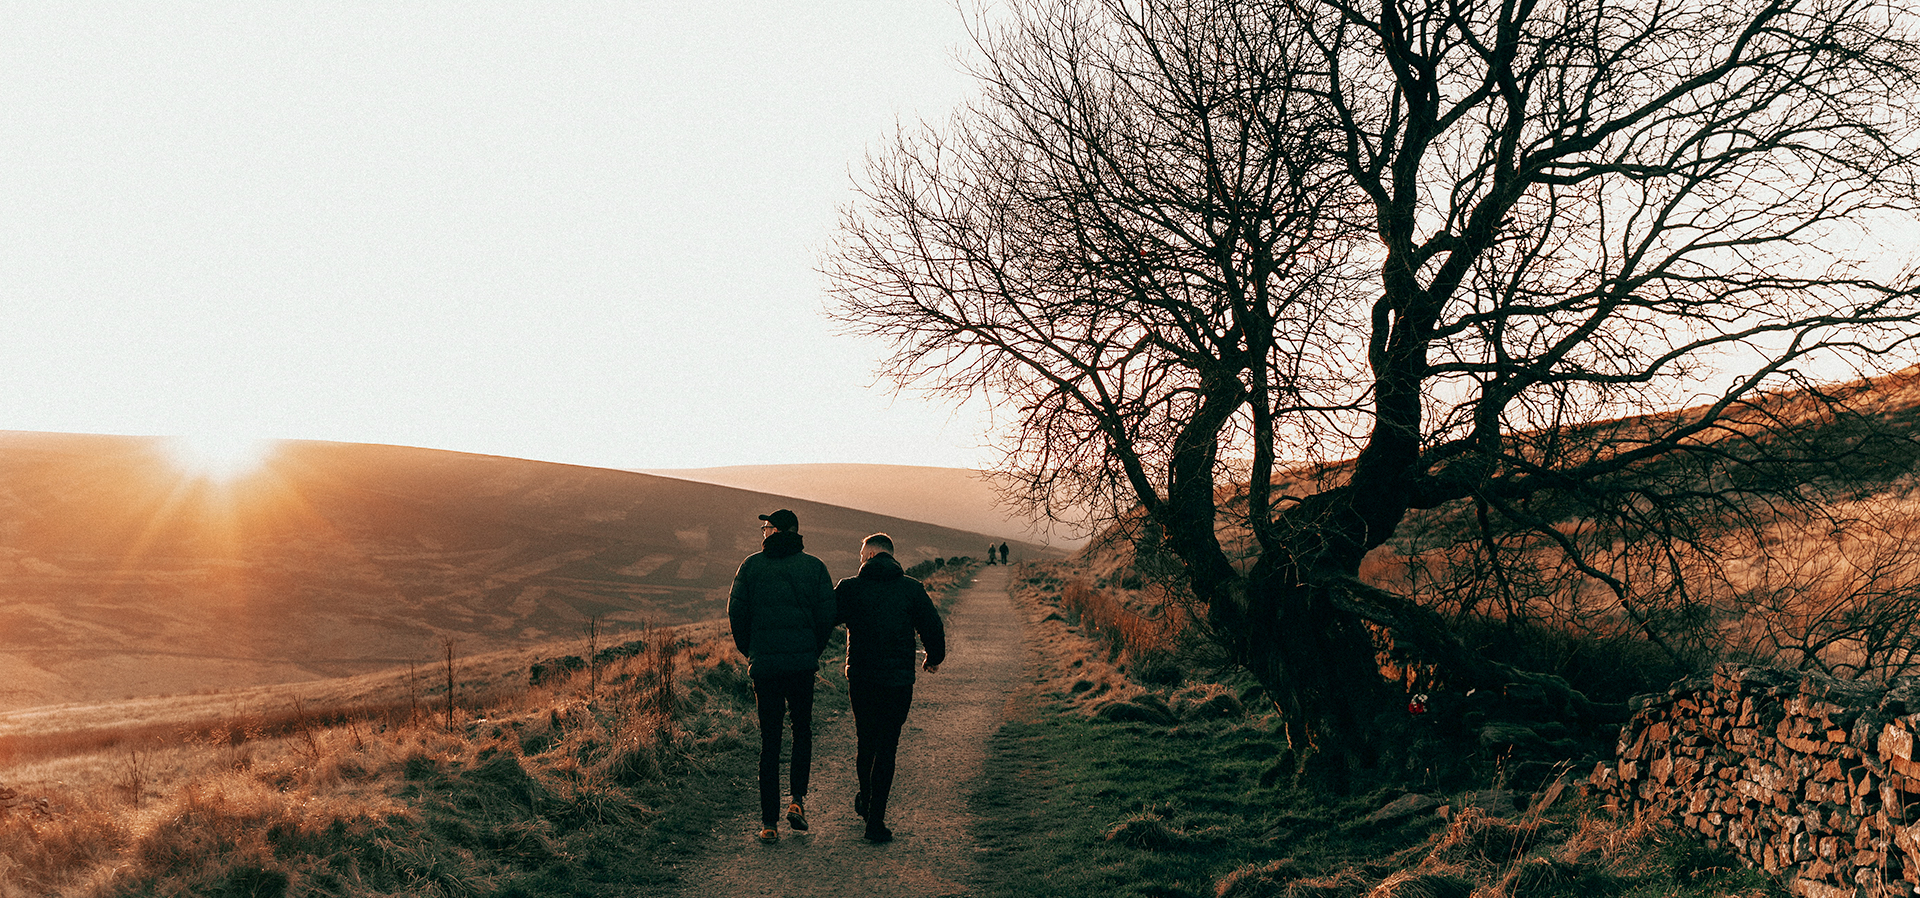 two men walk over a hill in the sunset